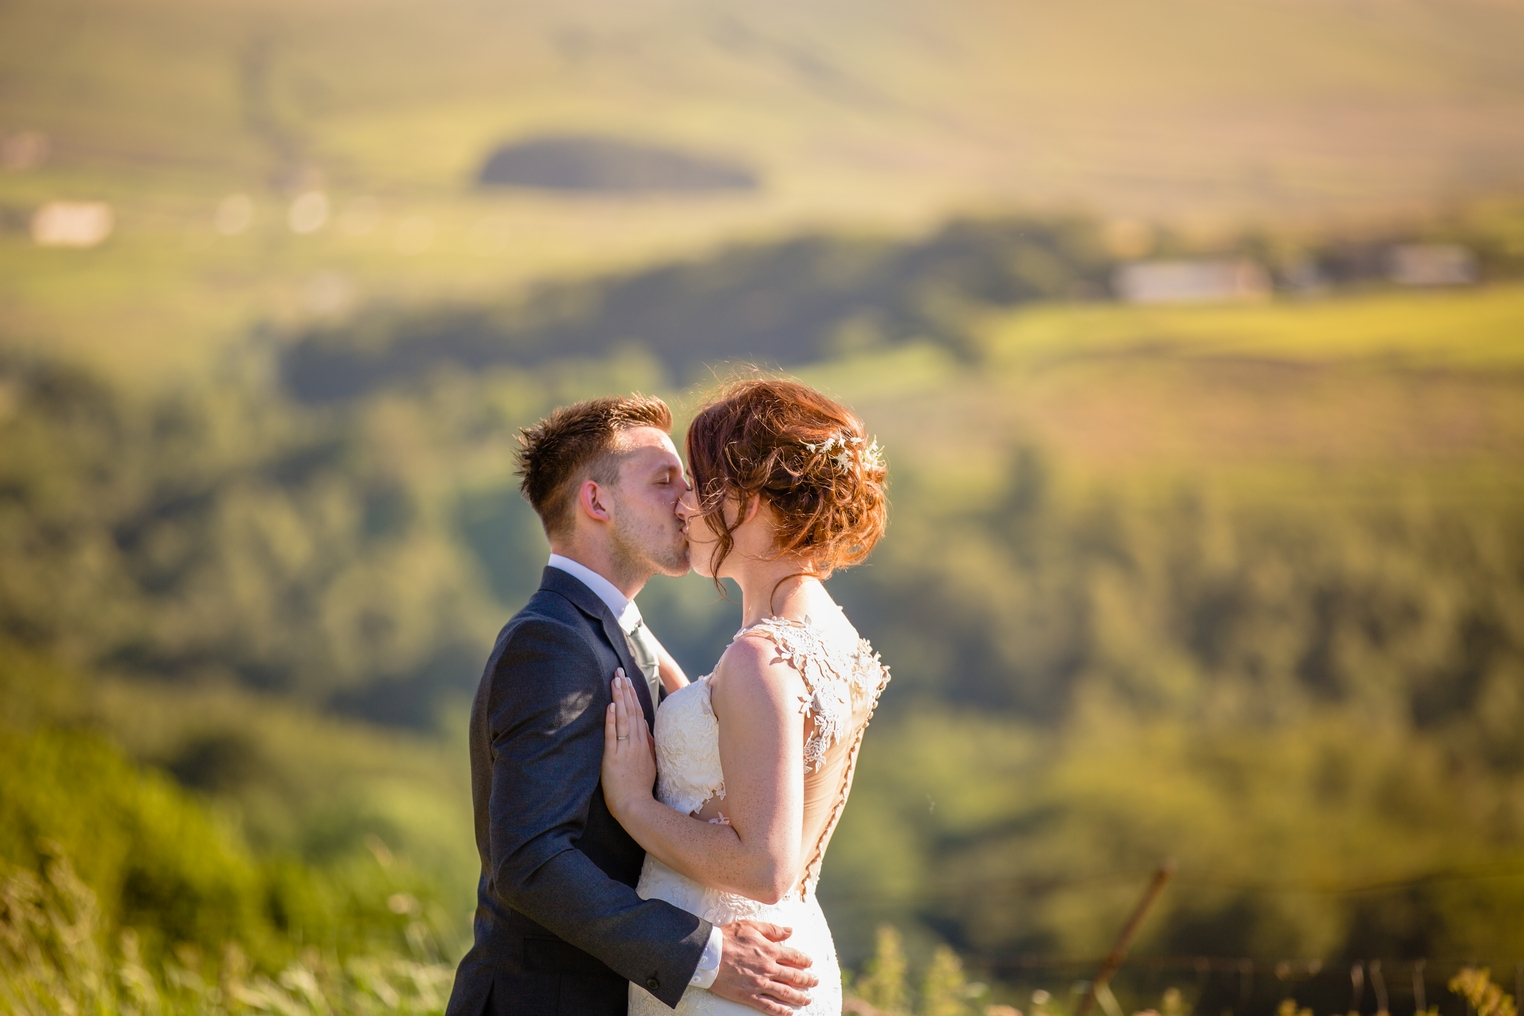 Wedding Photography in Leeds and Yorkshire